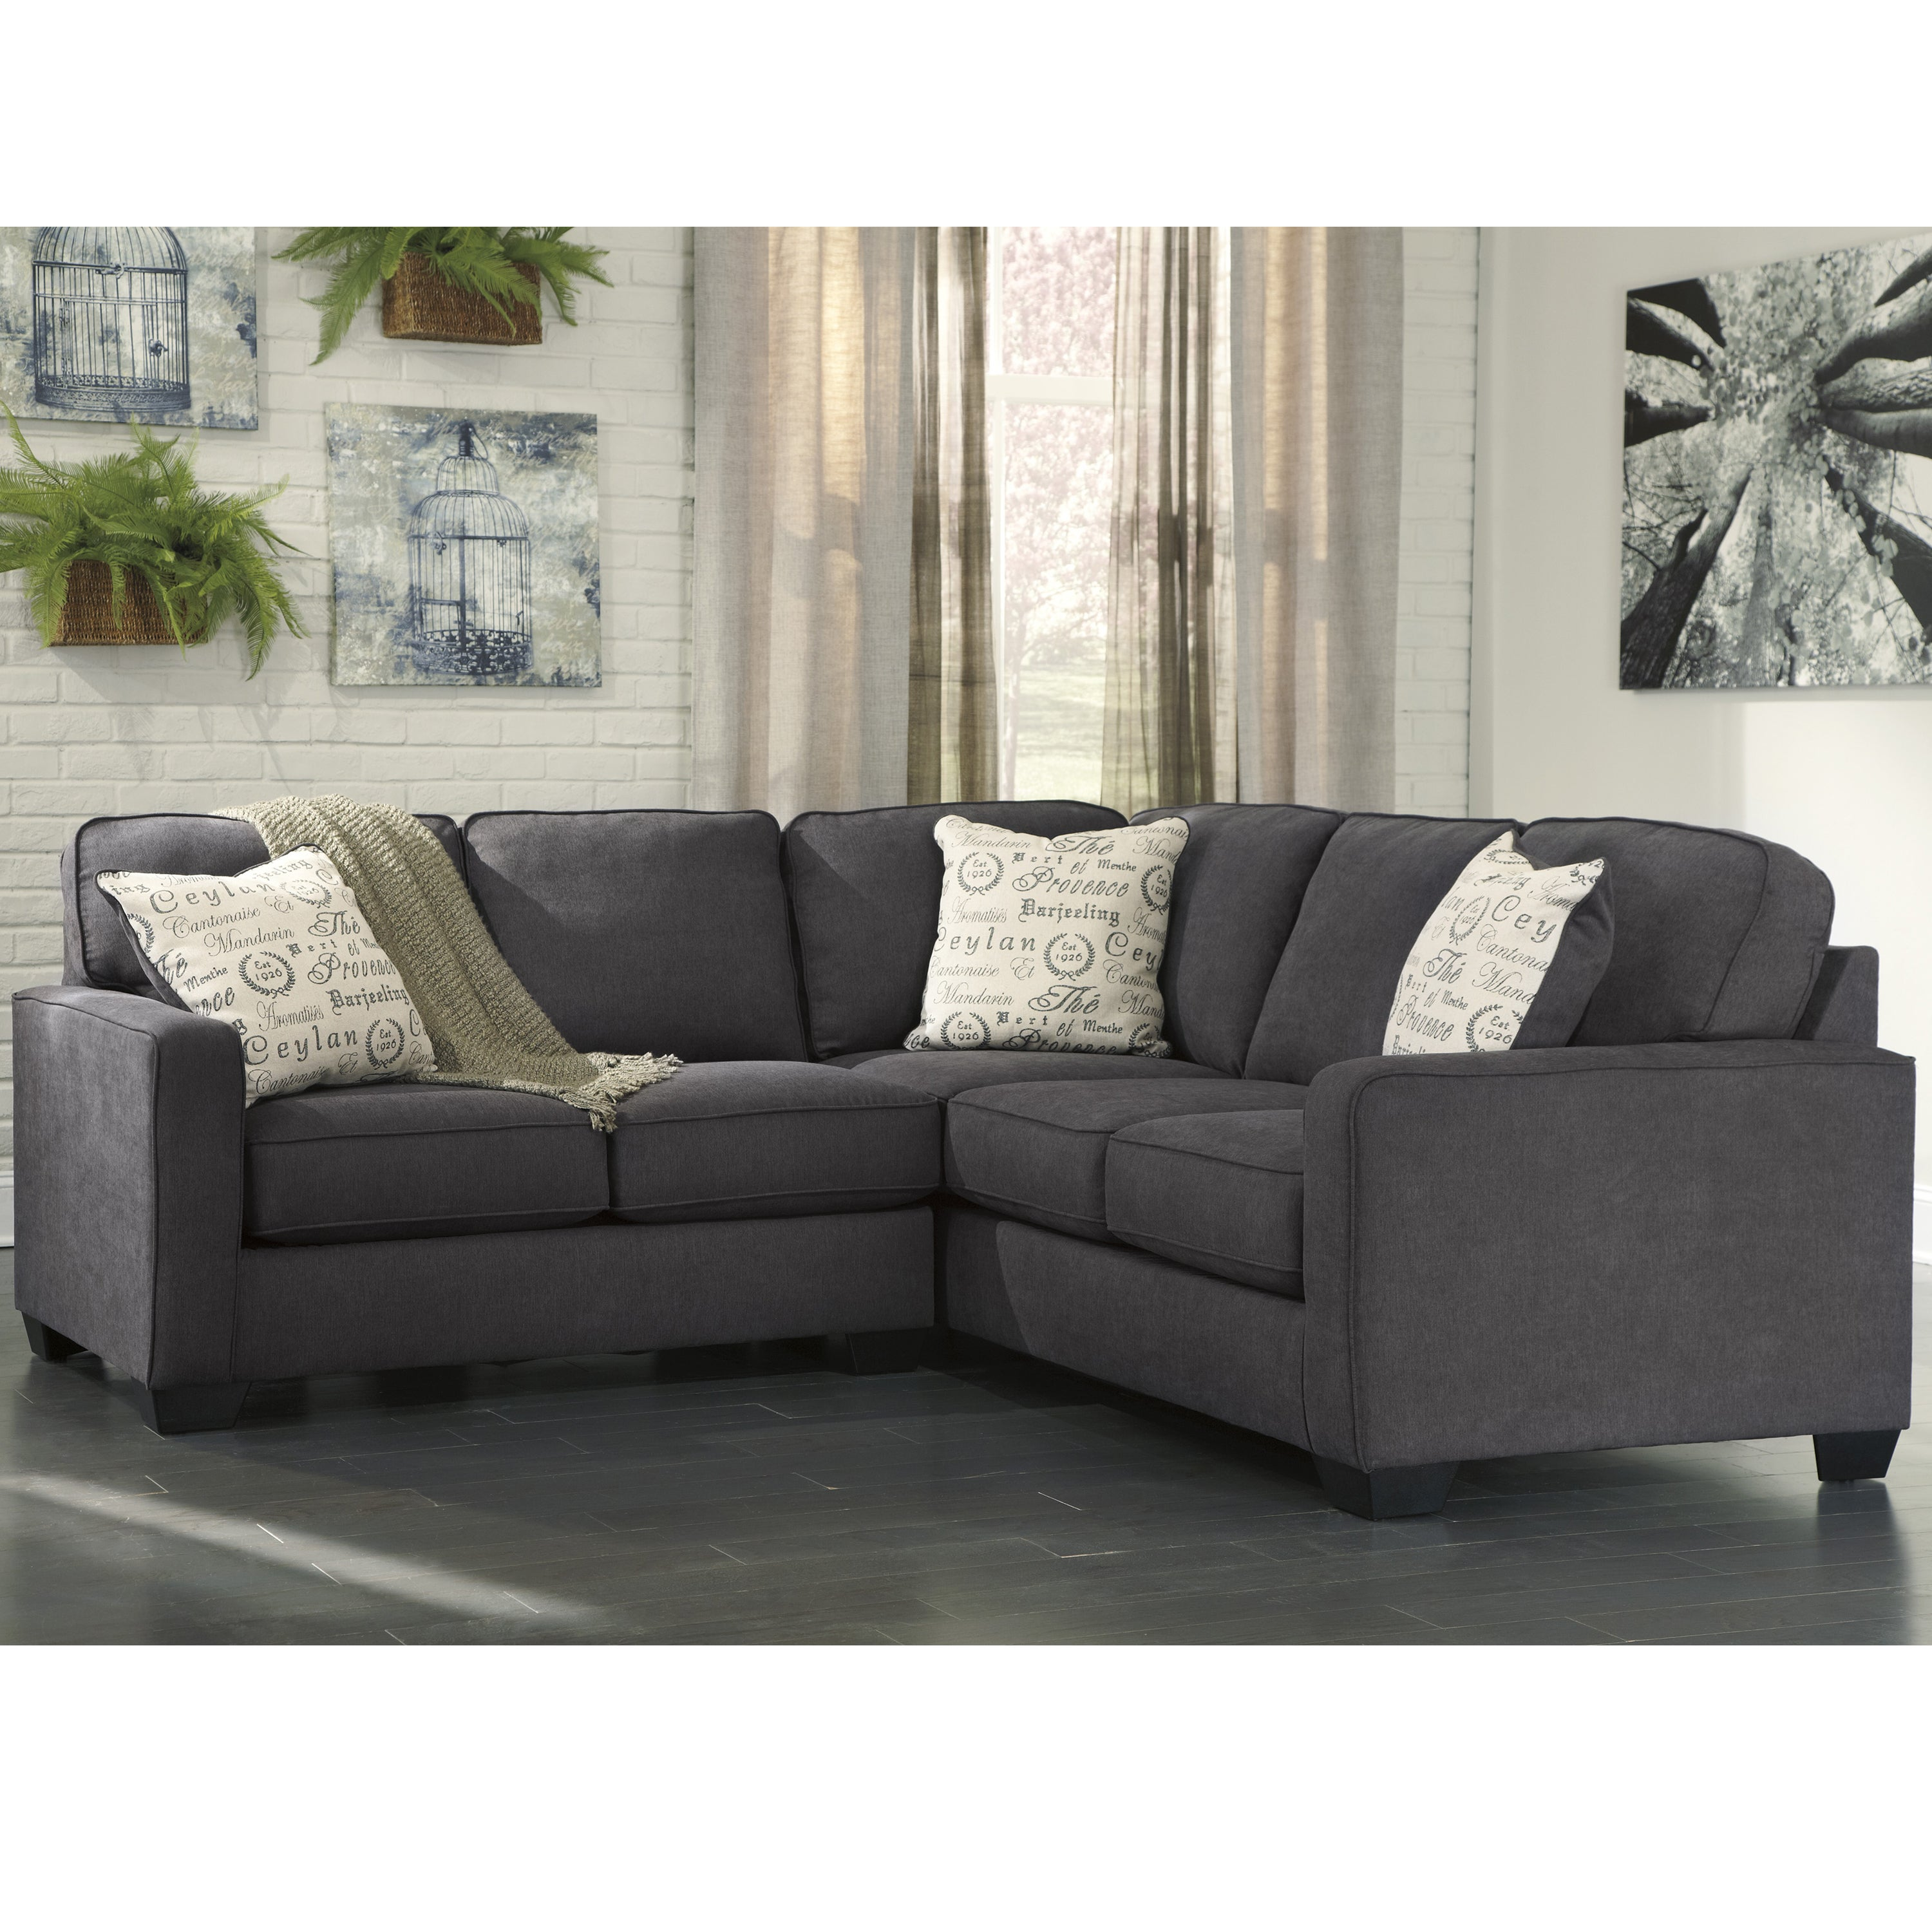 Shop Signature Design By Ashley Alenya 2 Piece Sofa Sectional In